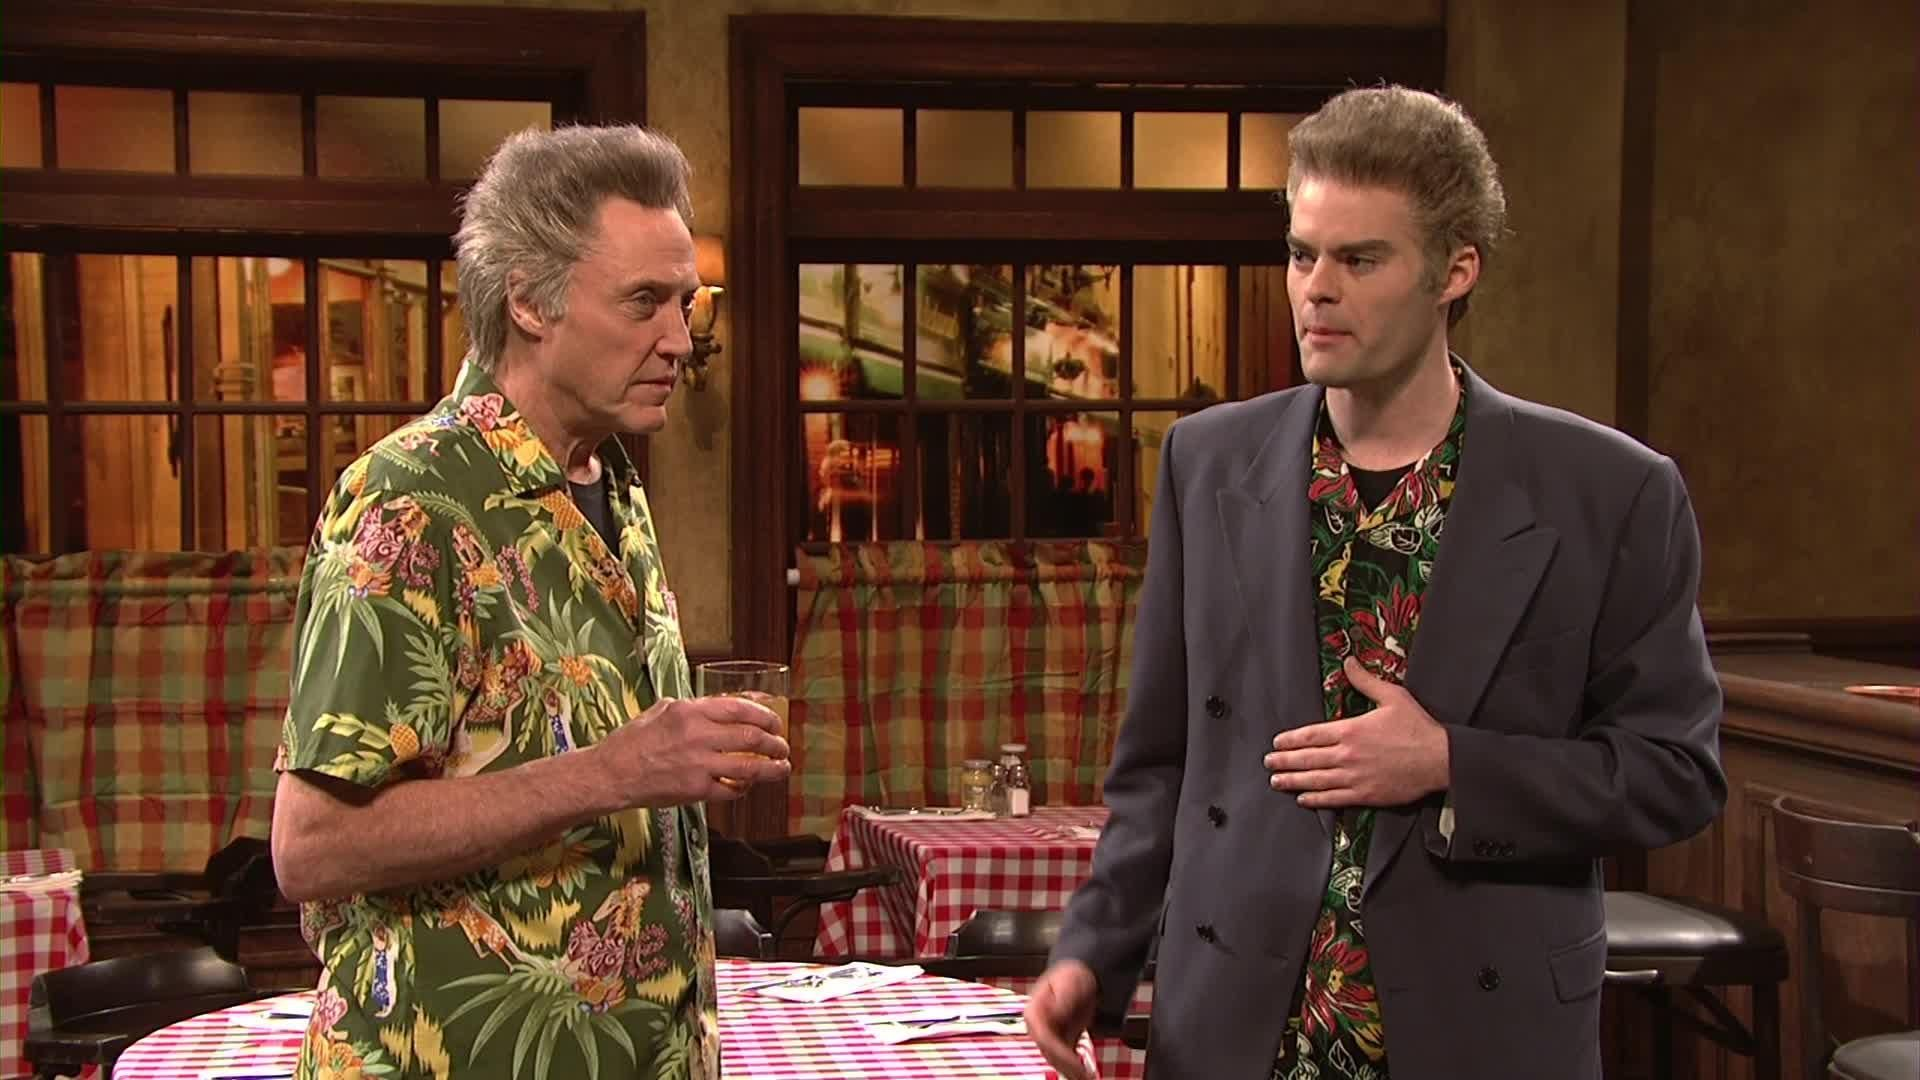 Saturday Night Live Tbt Amy Poehler And Bill Hader Attend A Walken Family Reunion Saturday Night Live Walken Amy Poehler